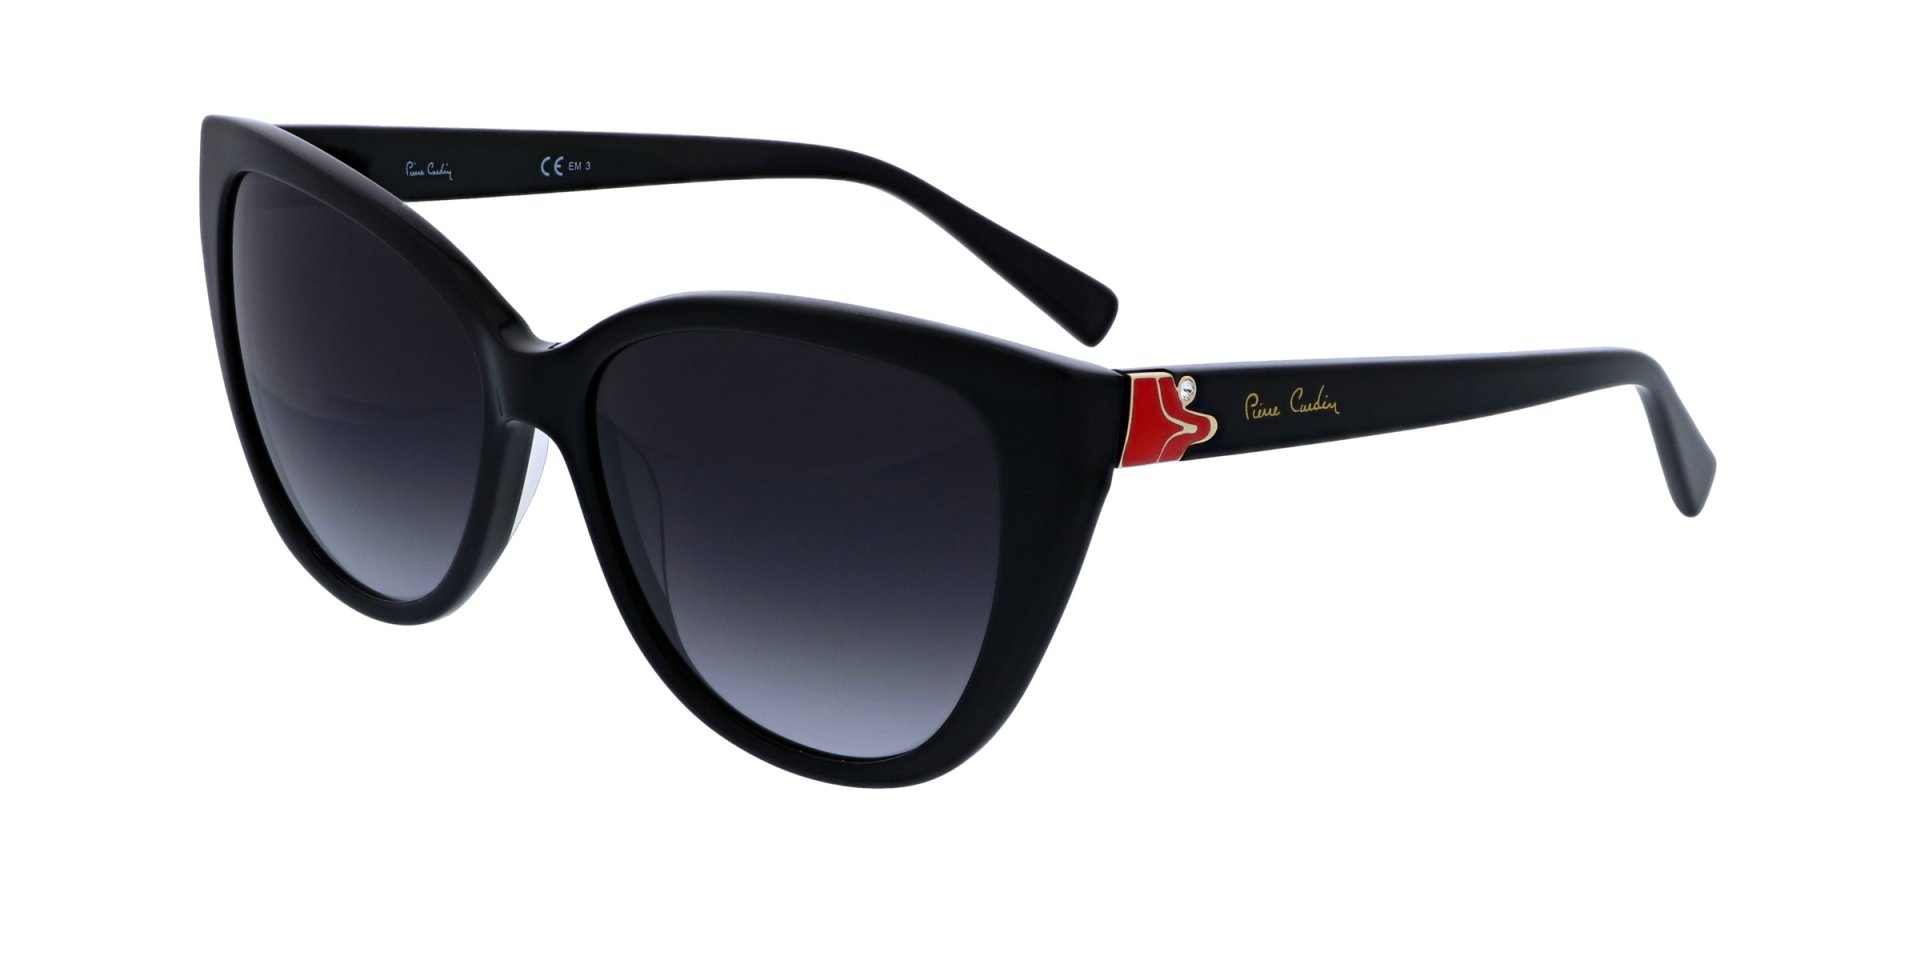 Exceptional PIERRE CARDIN 8445/S 807/9O